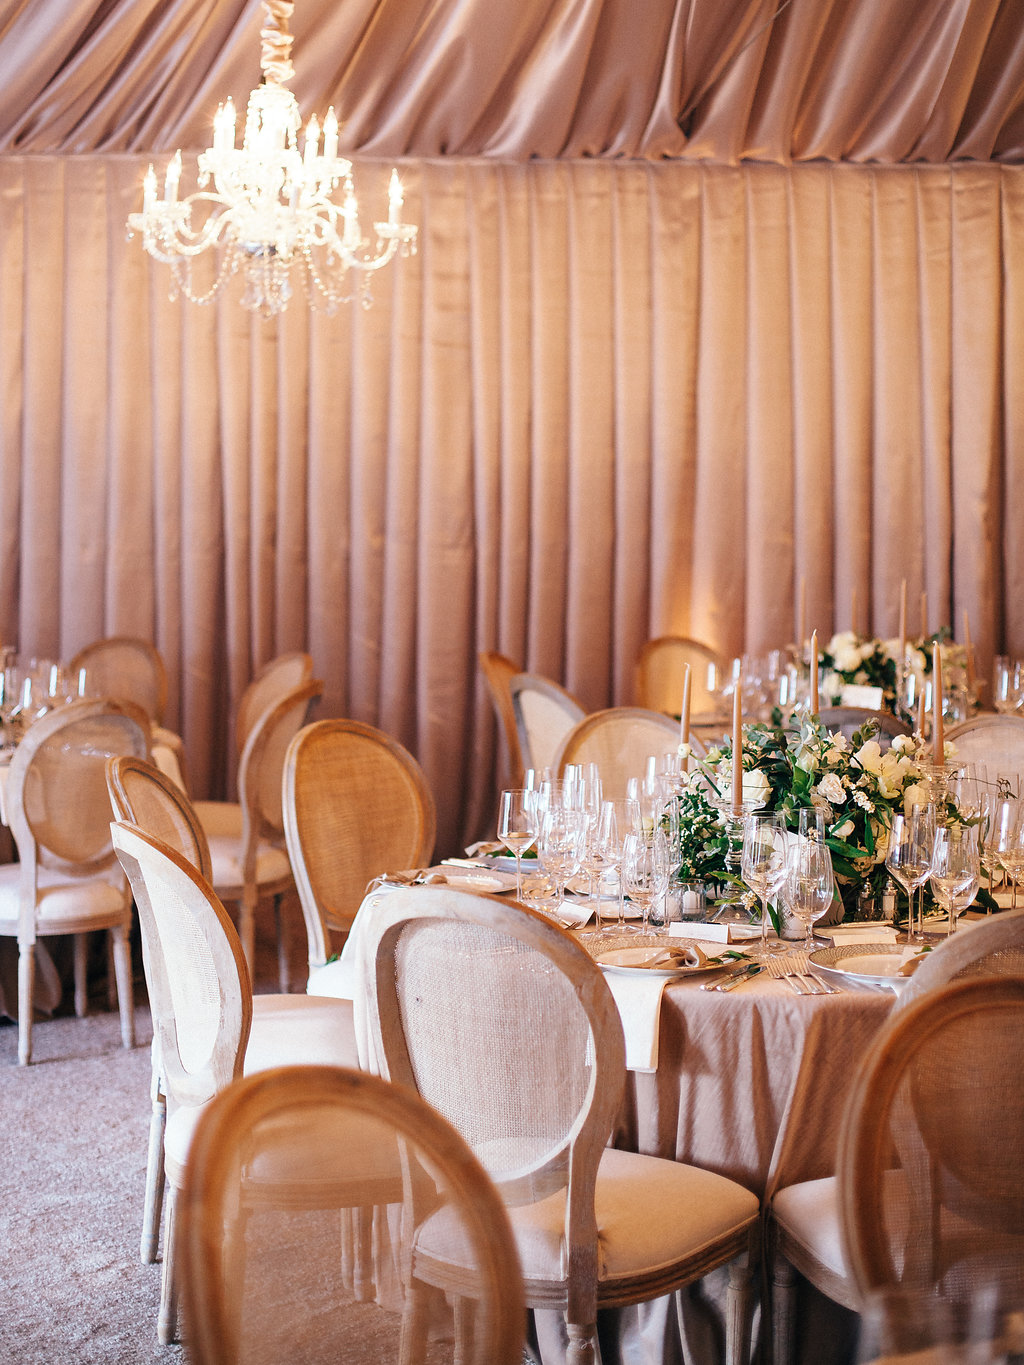 ideas djamel ghost weddingwire chairs chair ceremony outdoor at popular wedding styles photography